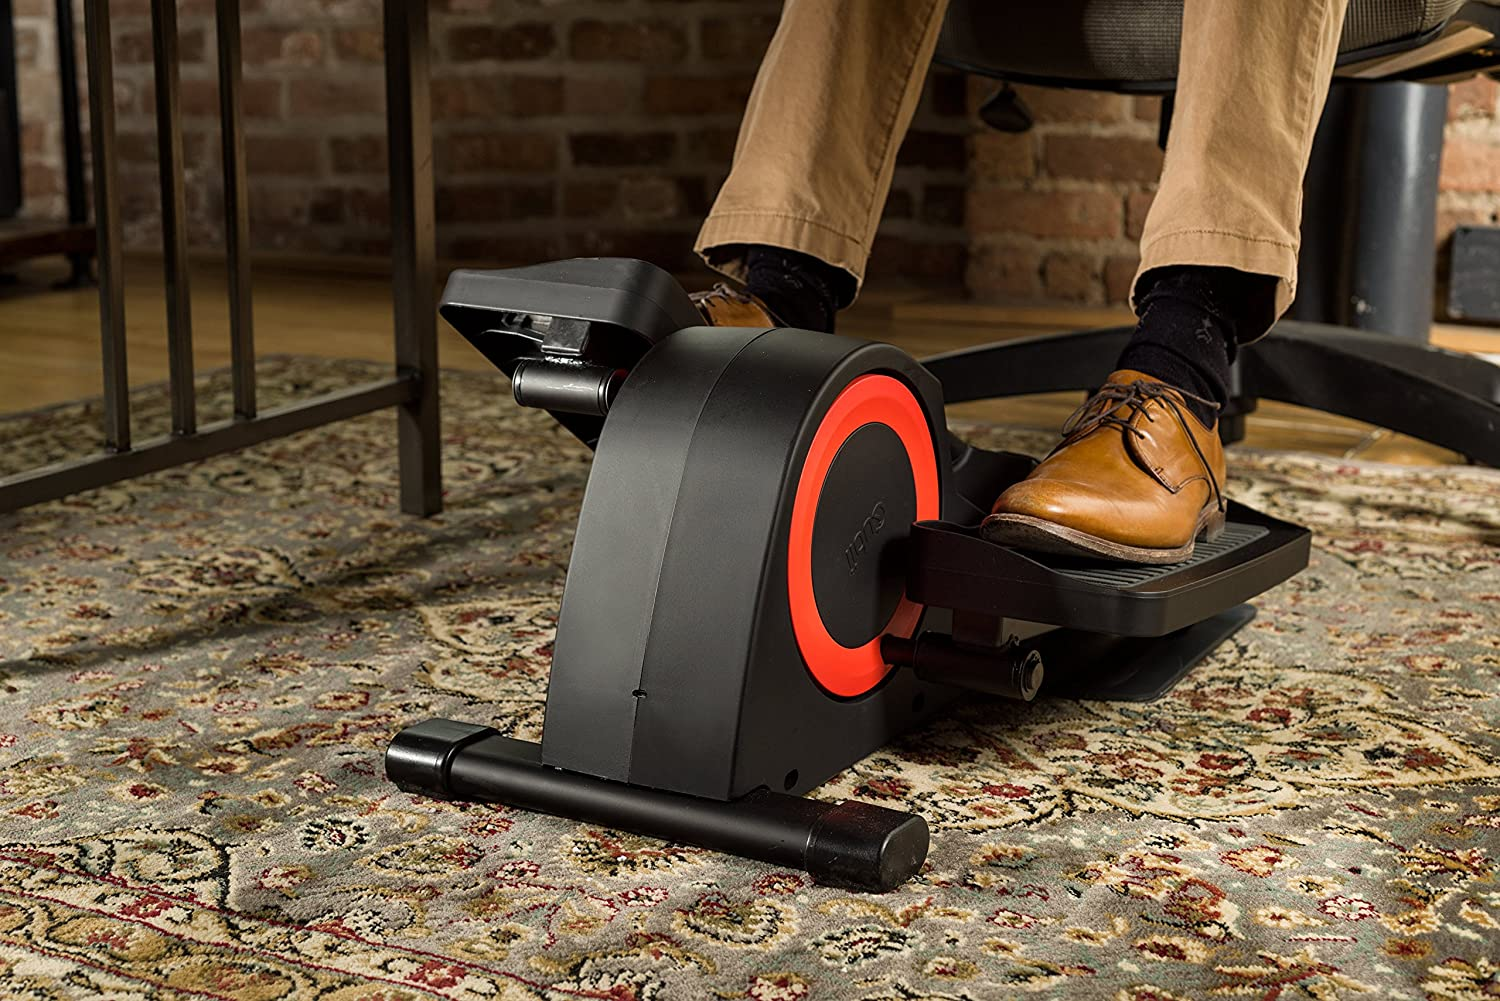 cubii mini elliptical